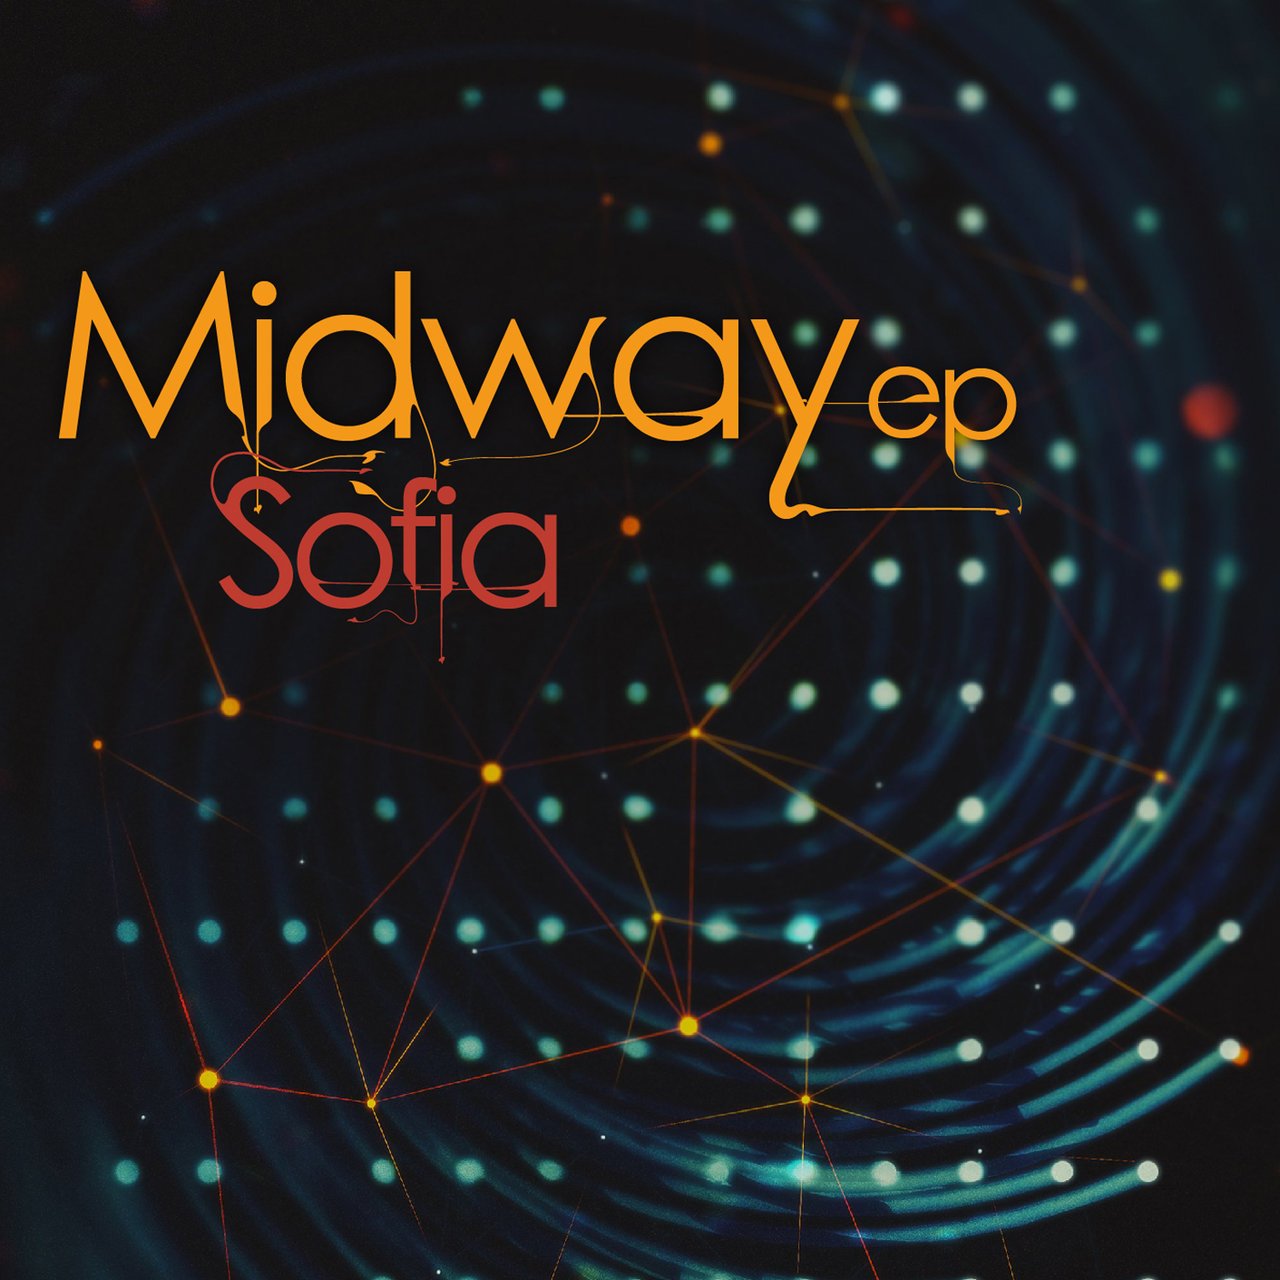 Midway EP